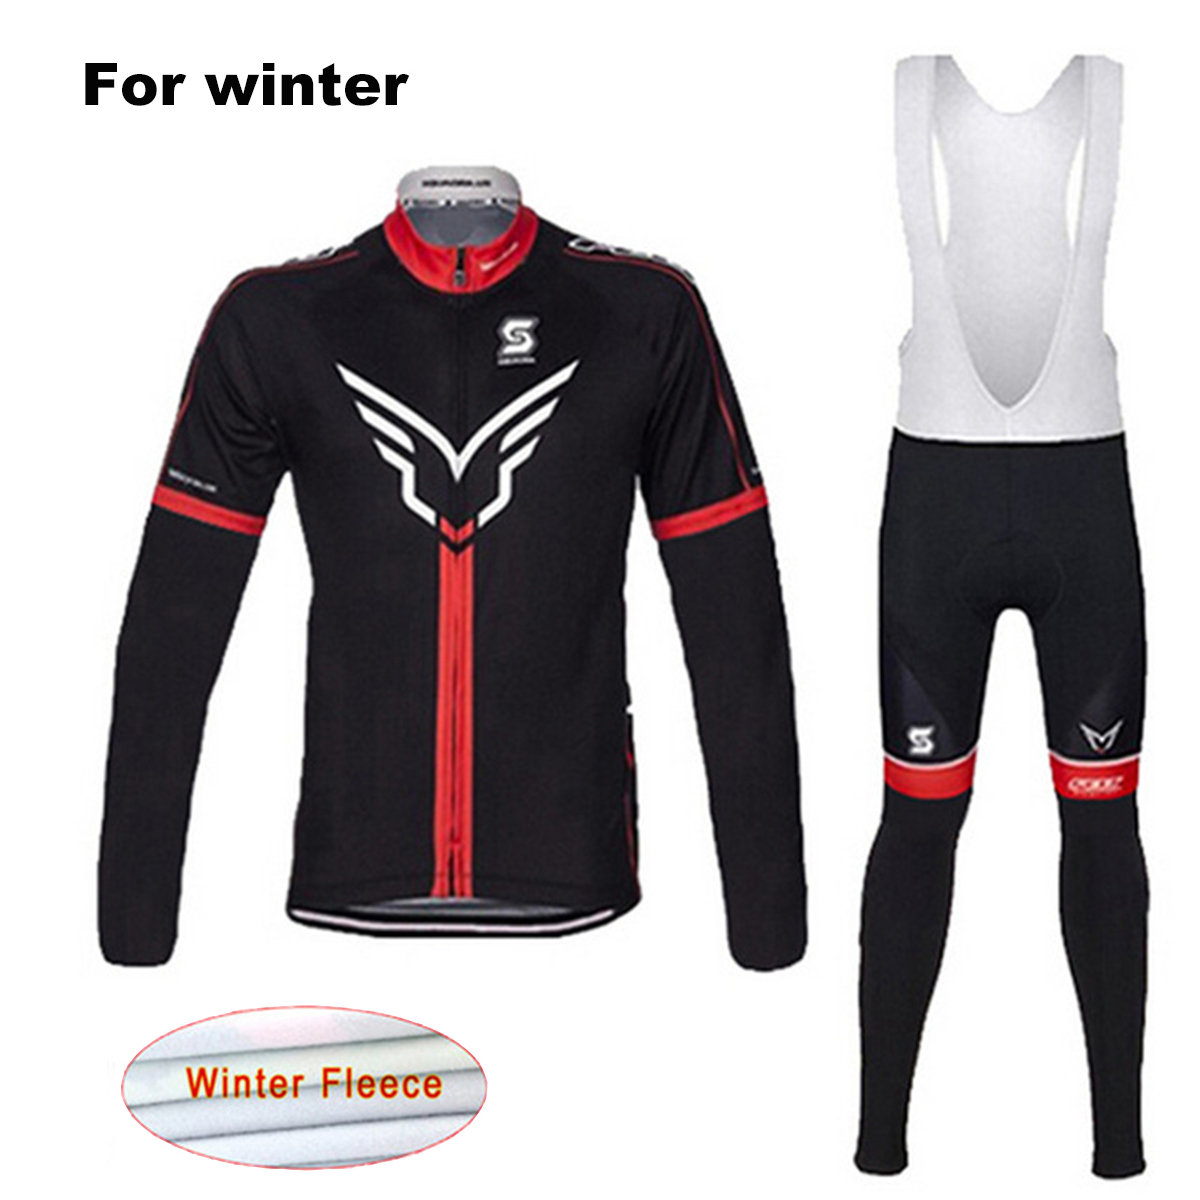 FELT Winter Thermal Fleece Team Cycling Jersey Set Long Sleeves MTB Bike Clothes Ropa Ciclismo Invierno Maillot Bicycle Clothing